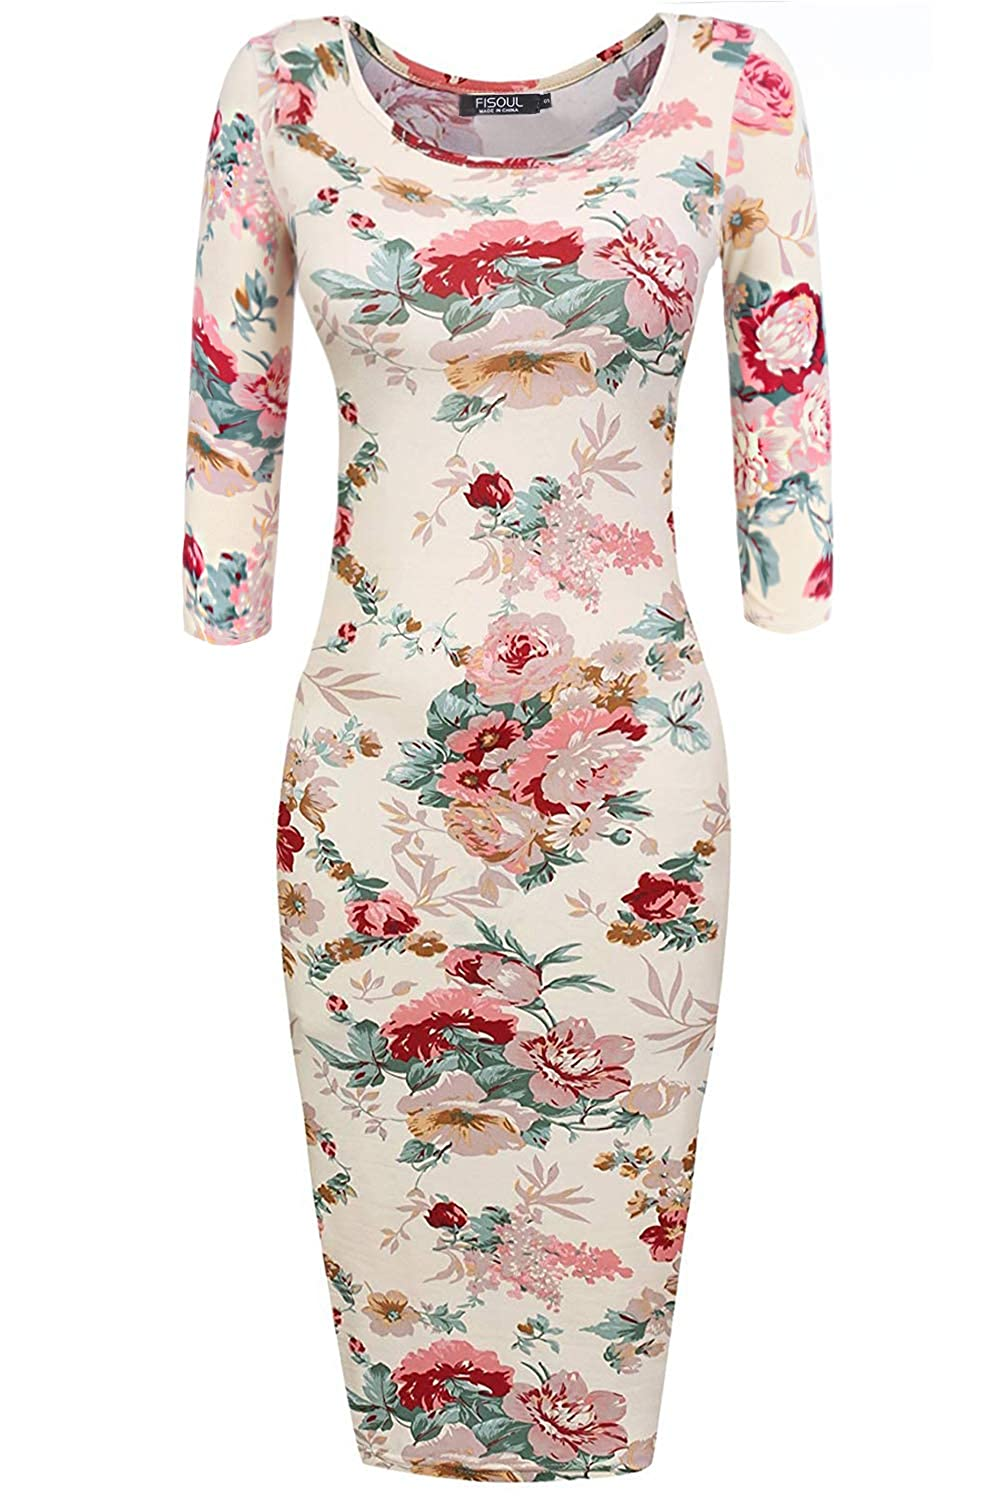 Beige FISOUL Womens Floral Bodycon Dress 3 4 Short Sleeve Scoop Neck Sweetheart Midi Pencil Slim Fitted Dress